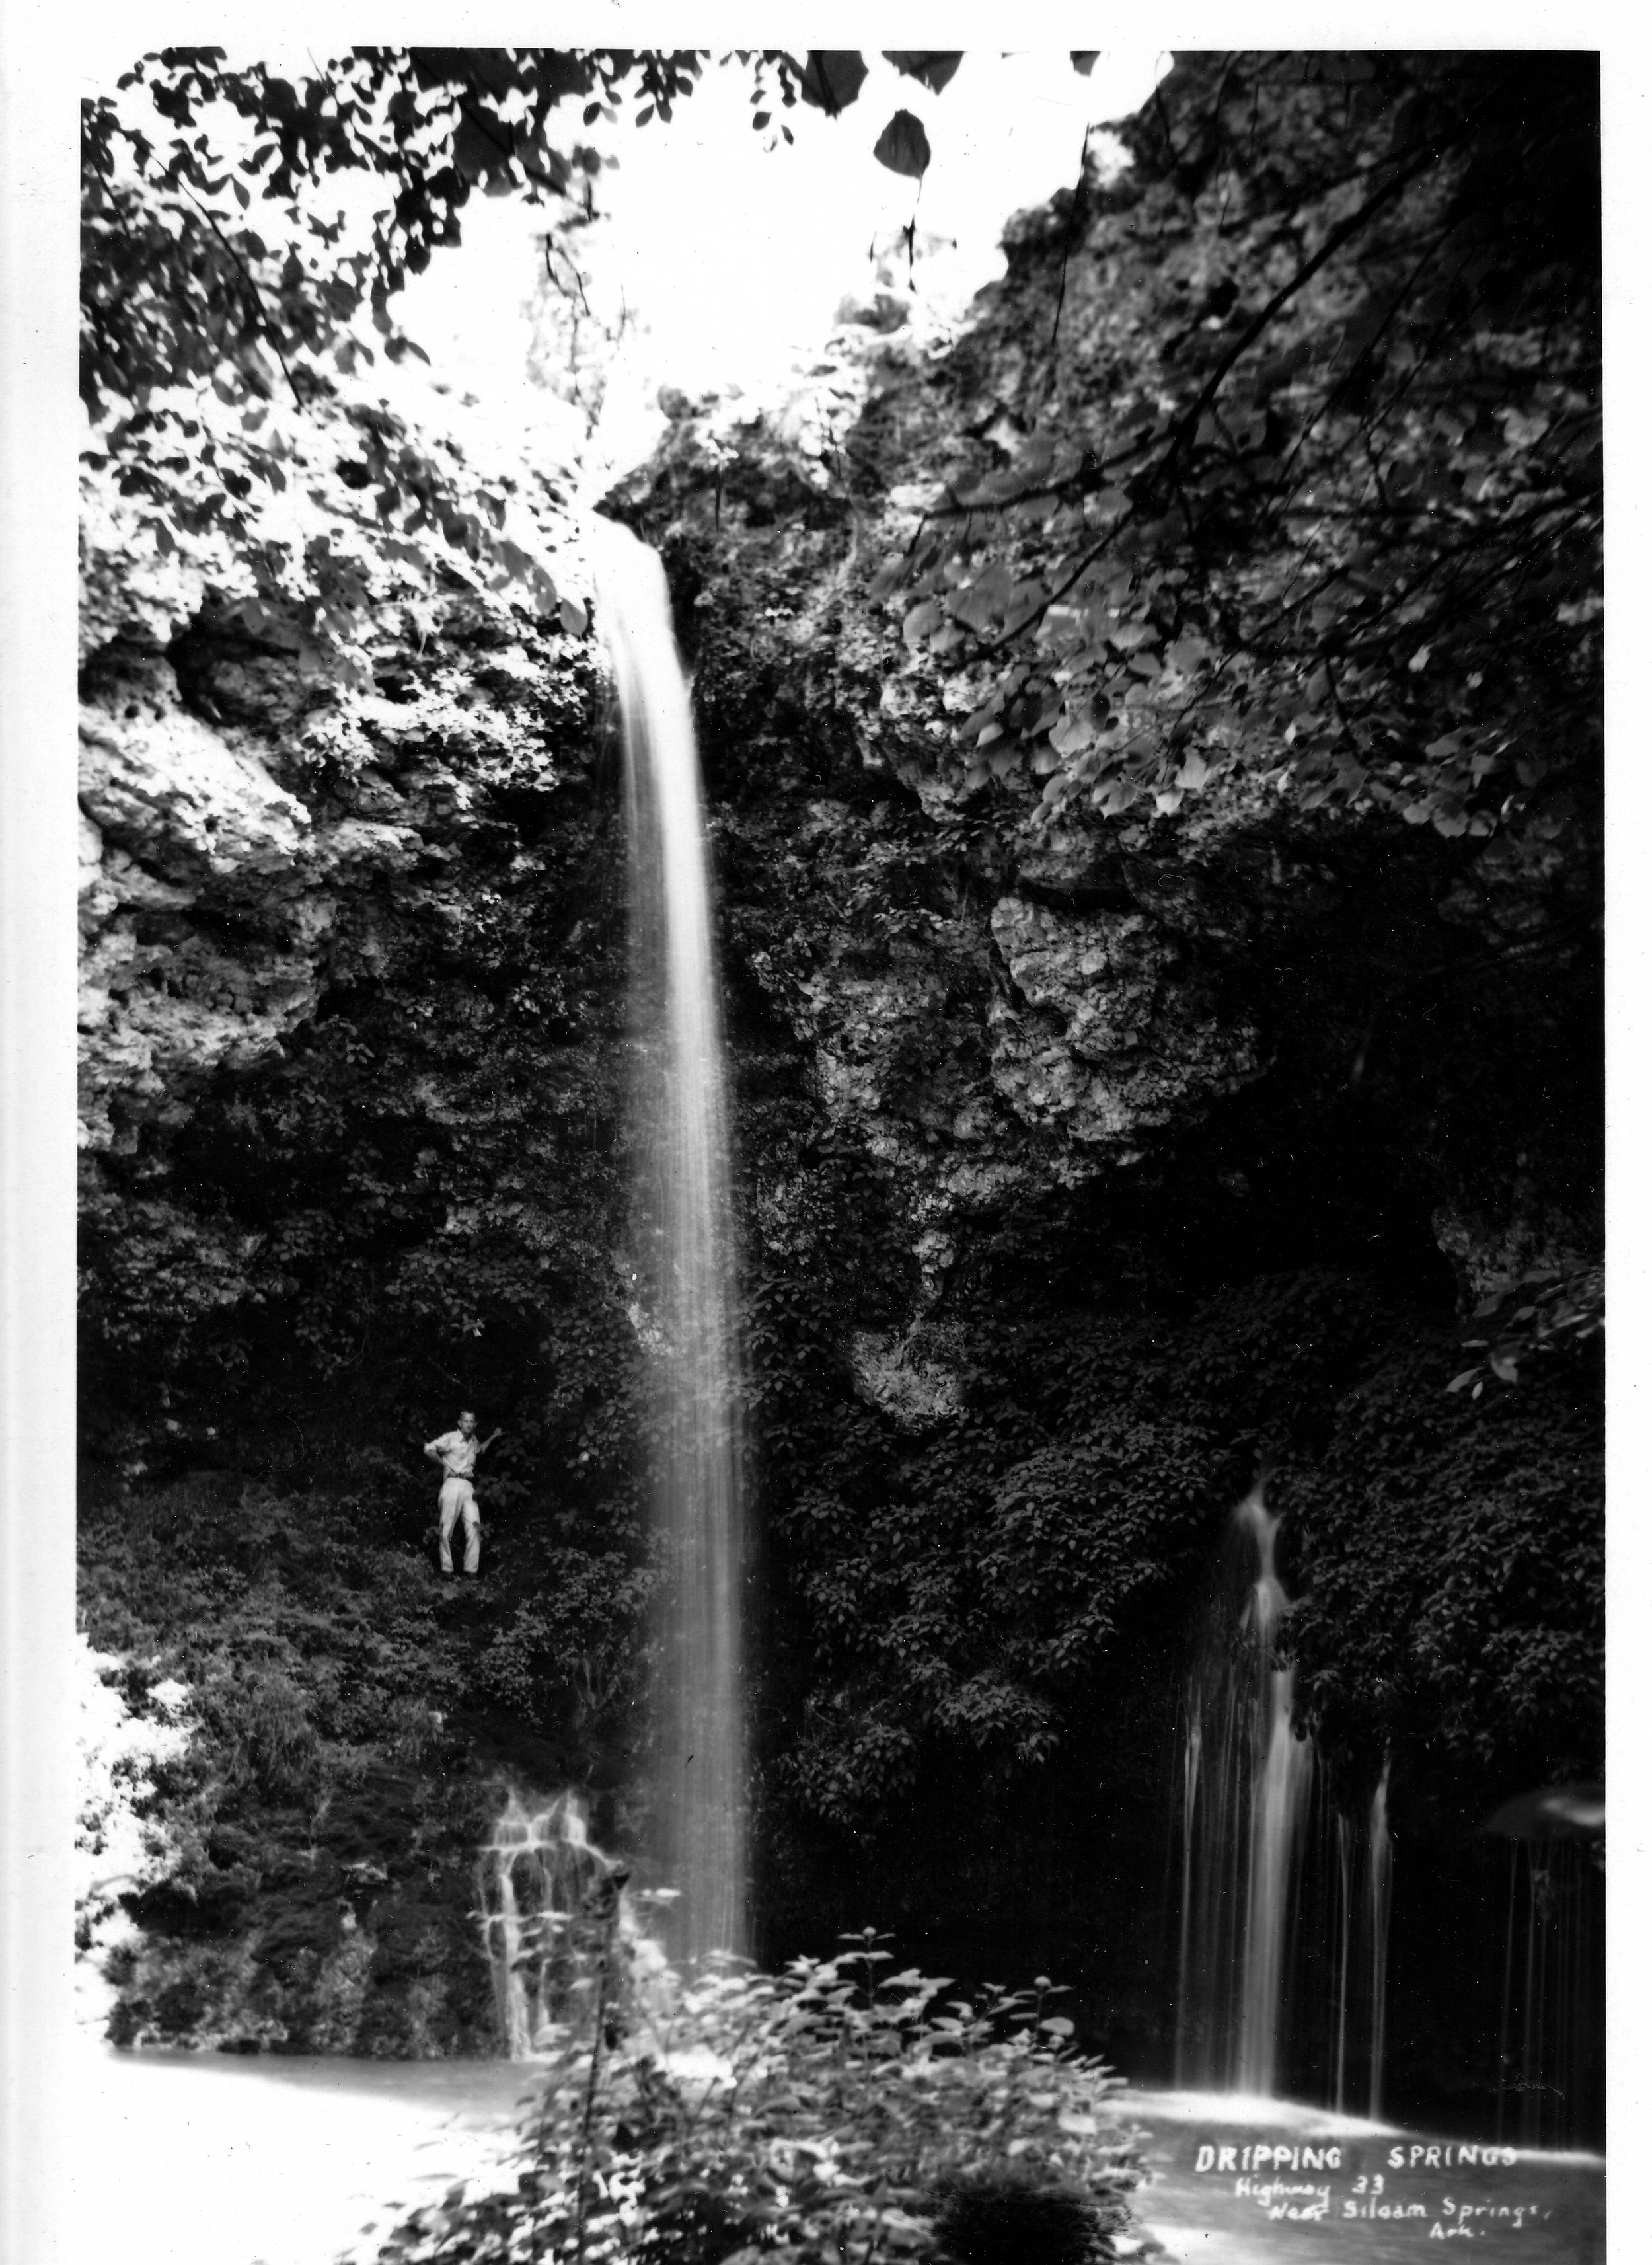 Today, the falls look similar to this photo, but to preserve the area, hikers are no longer allowed to climb the bluffs.